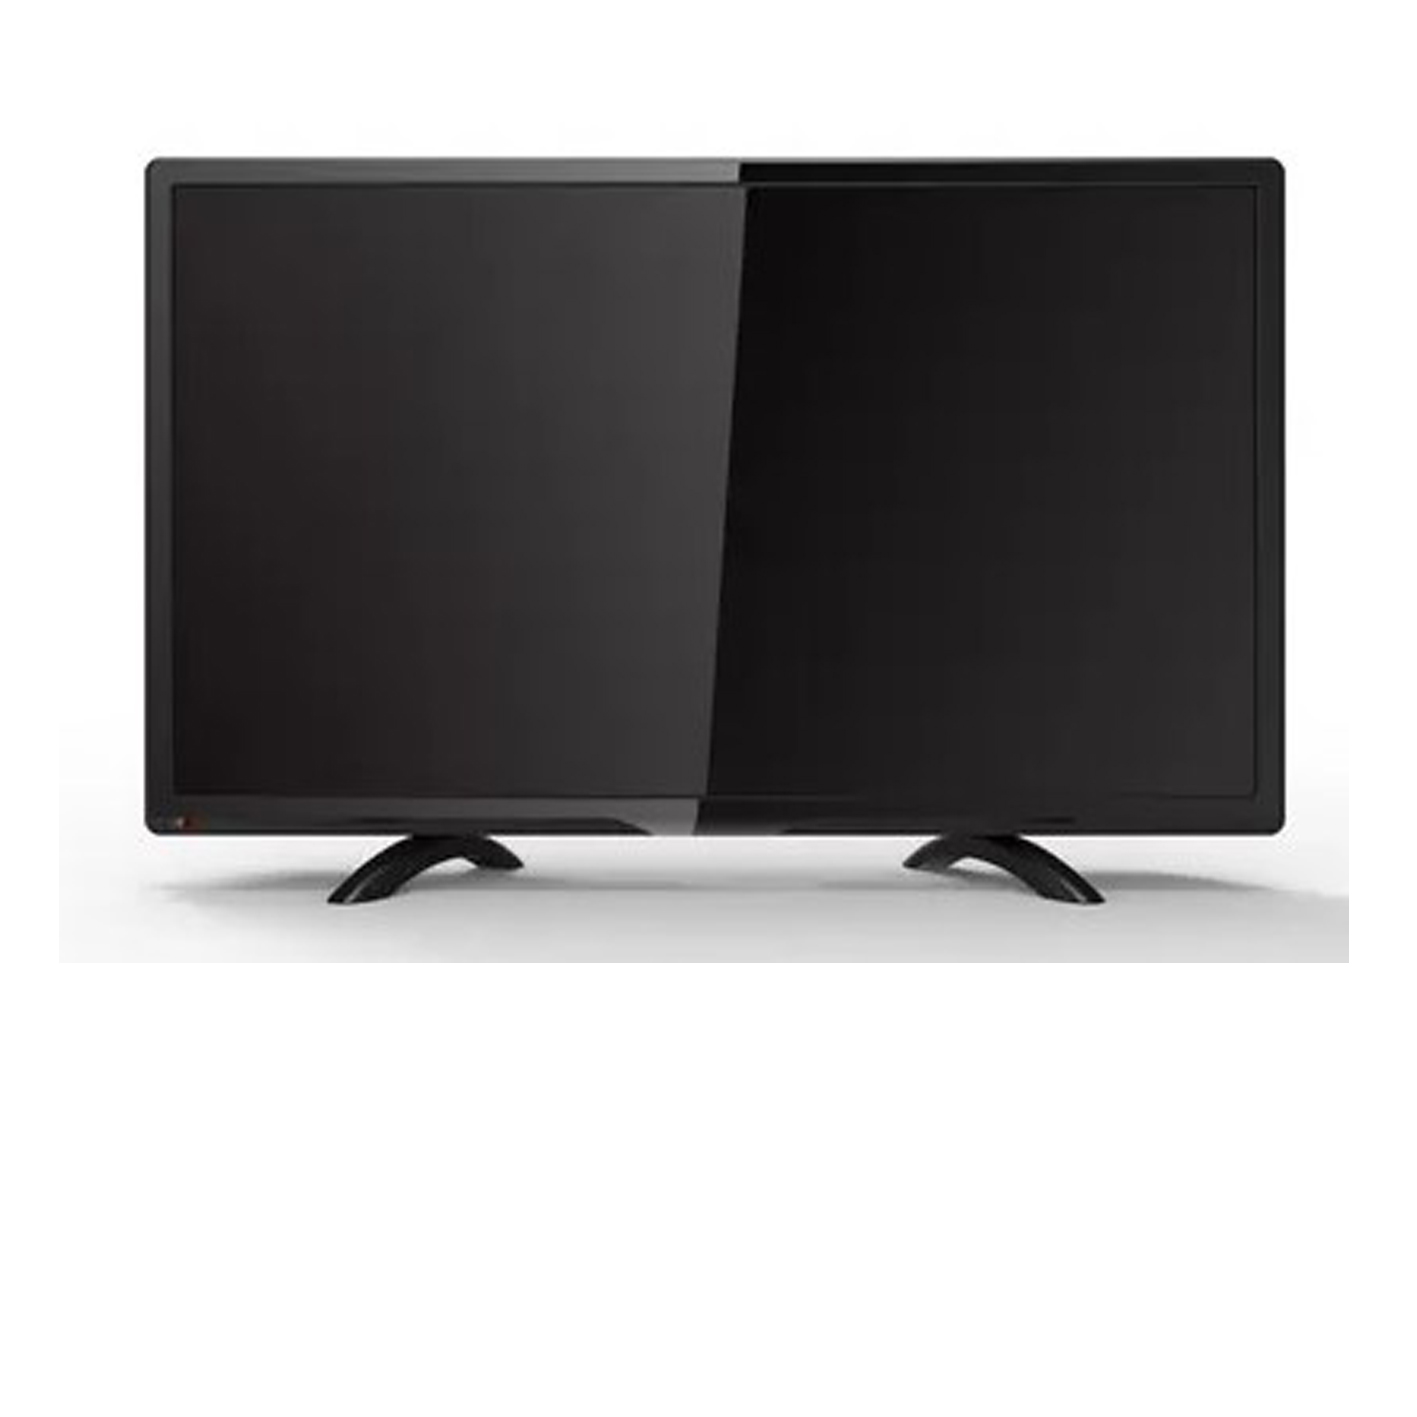 Profilo 24PA200E 24 İnç 60 Ekran HD LED TV